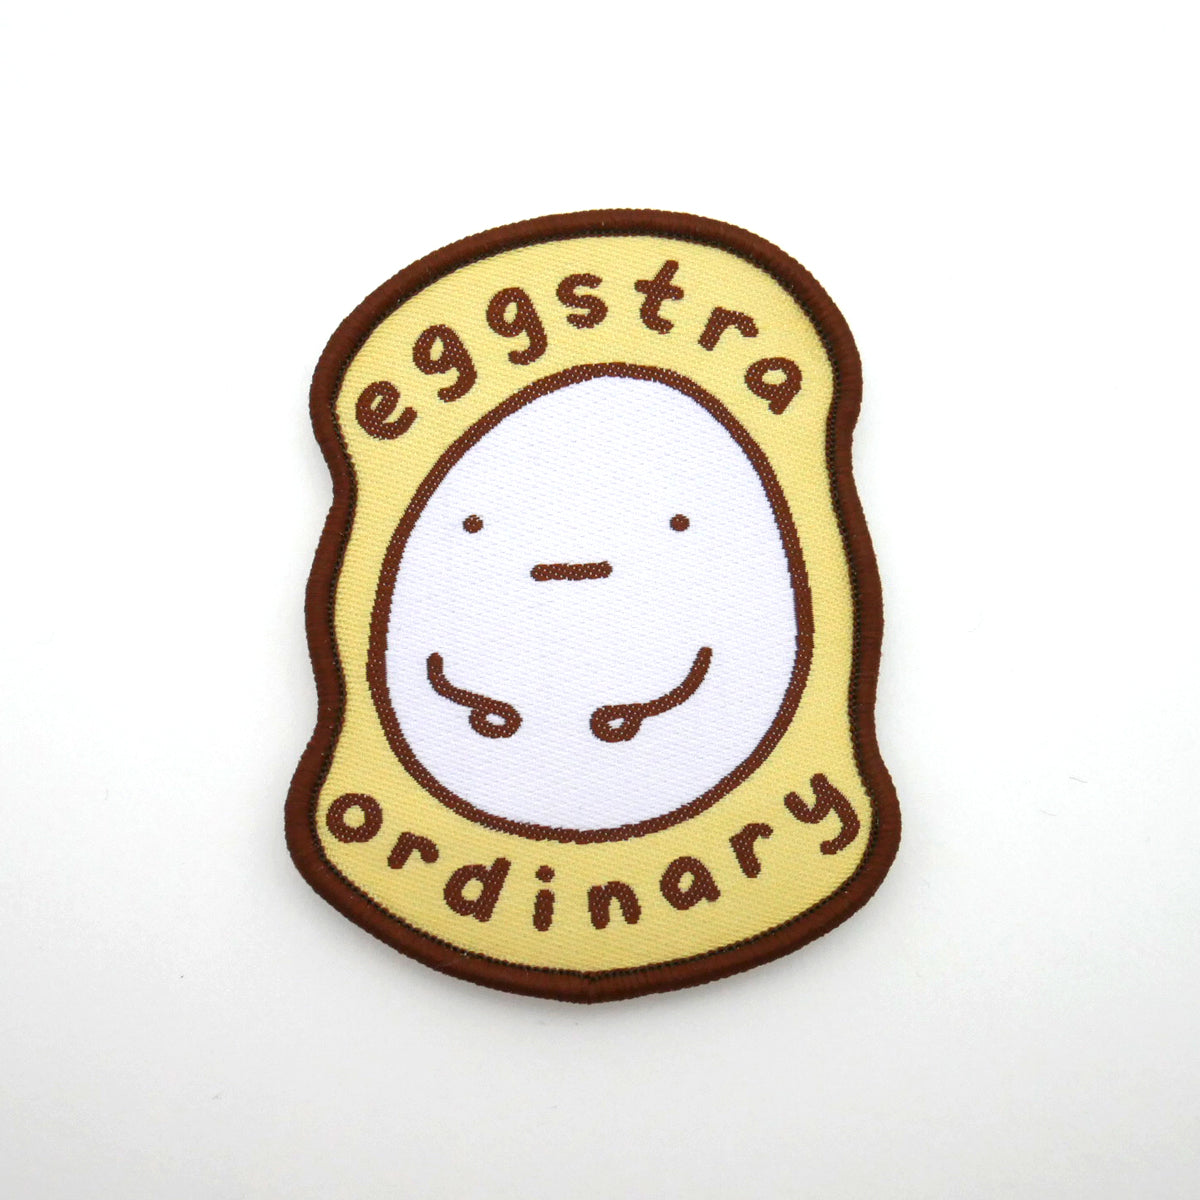 Eggstra Ordinary Iron-on Patch